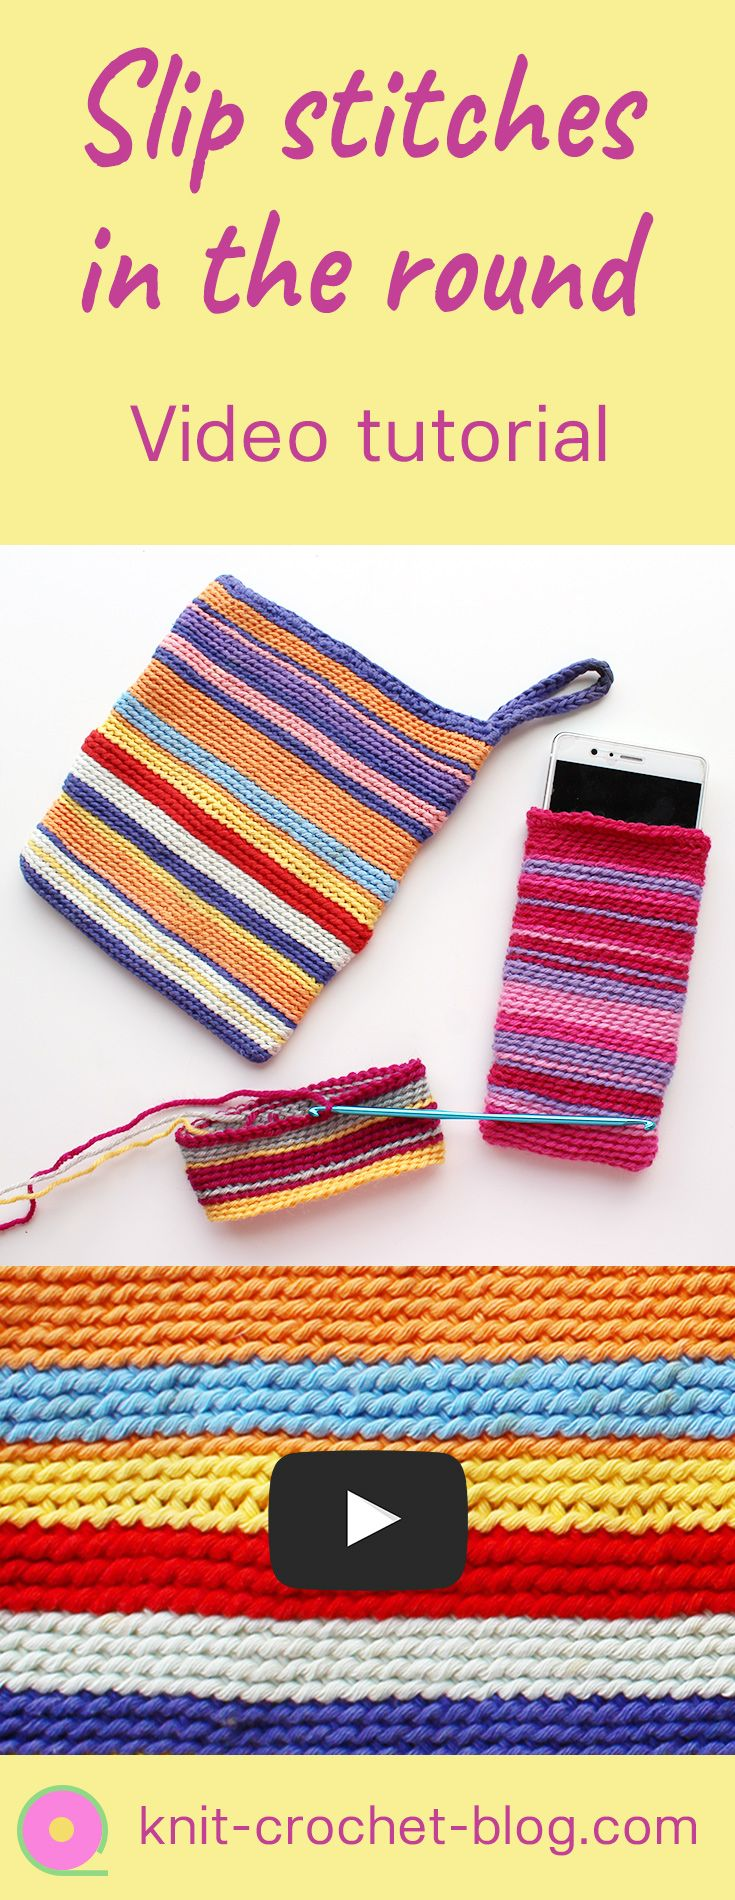 Easy tutorial for slip stitch crochet in the round. Create easy colorful crochet projects. You can use the technique for purses, bags, phone cases, tablet covers, pot holders, coasters and many more. Step by step instructions of the technique. Suitable for beginners. Crochet ideas for home. #crochettutorial #crochet